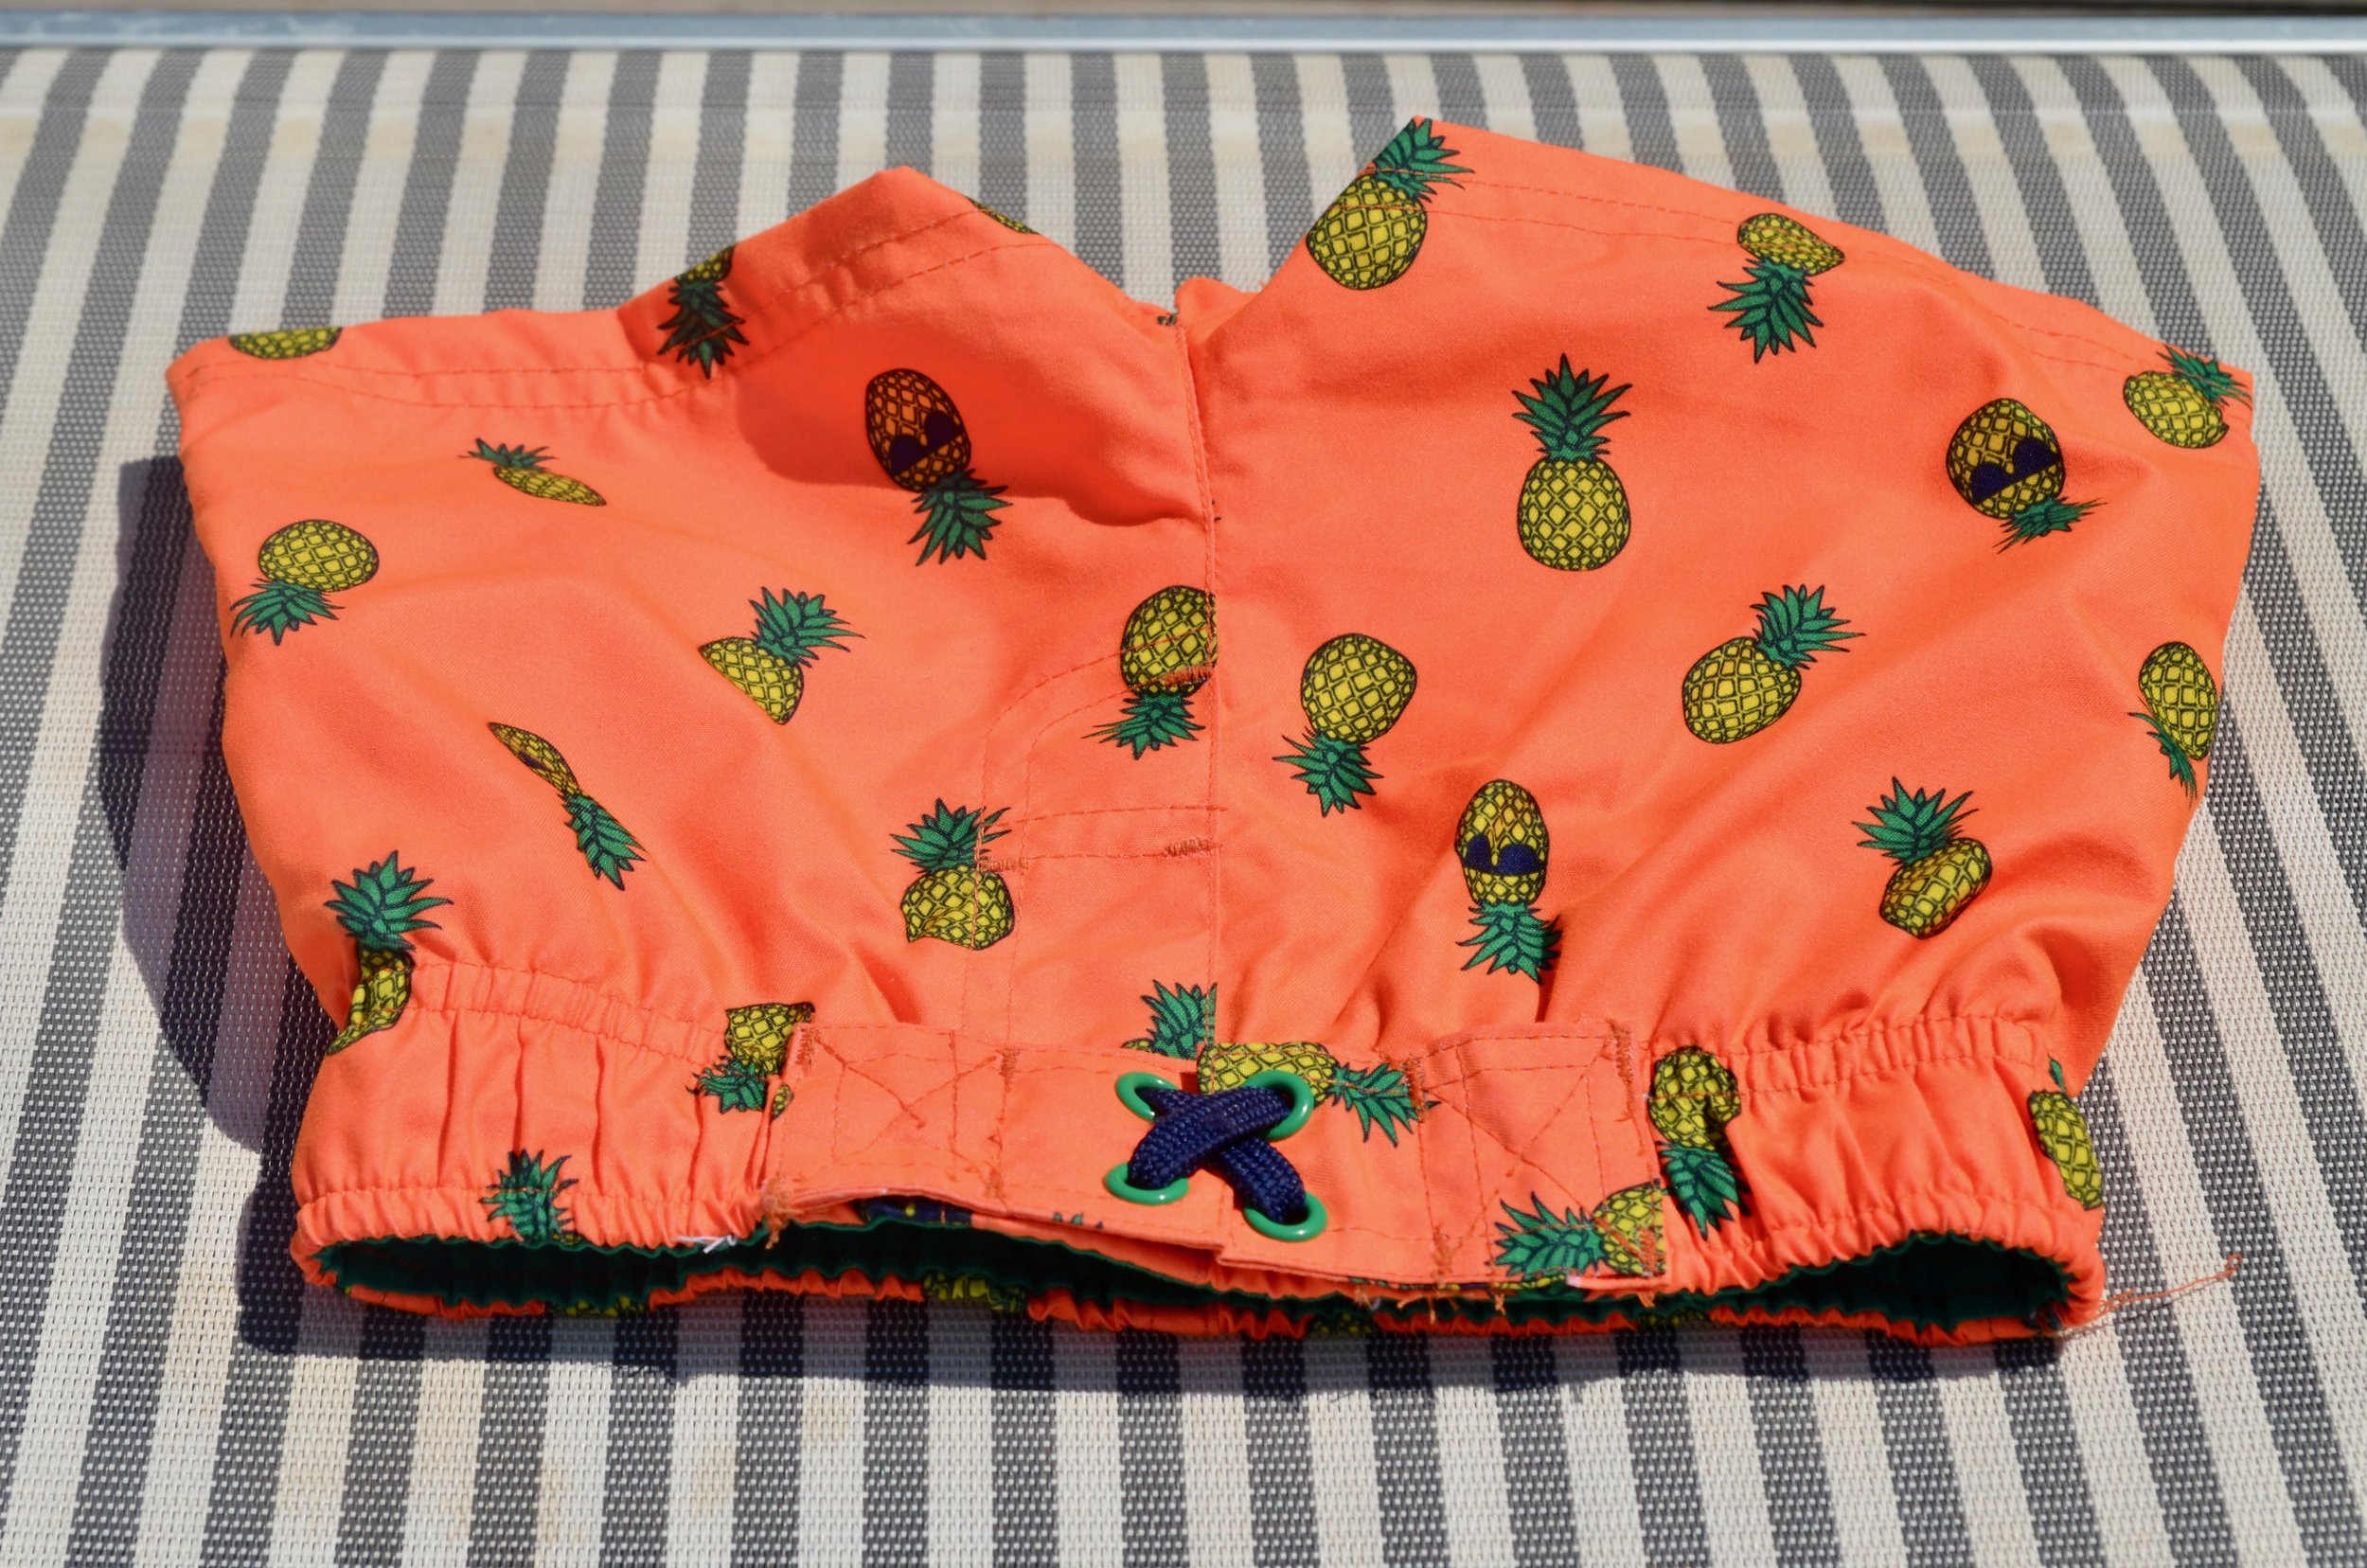 Cute little swim trunks for the cutest booty around.